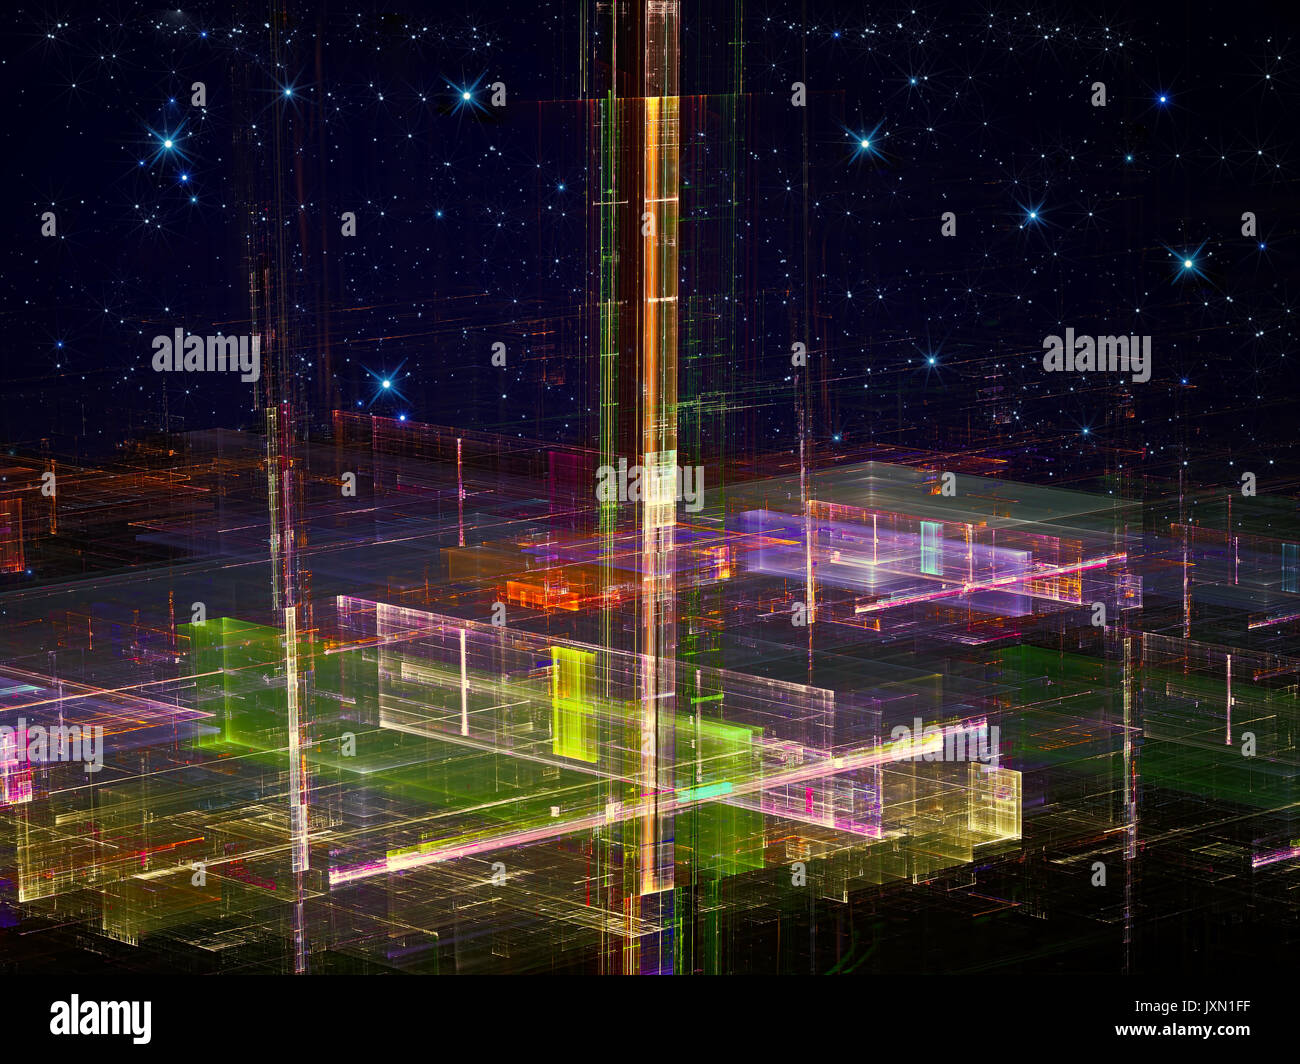 Abstract future city - digitally generated image - Stock Image